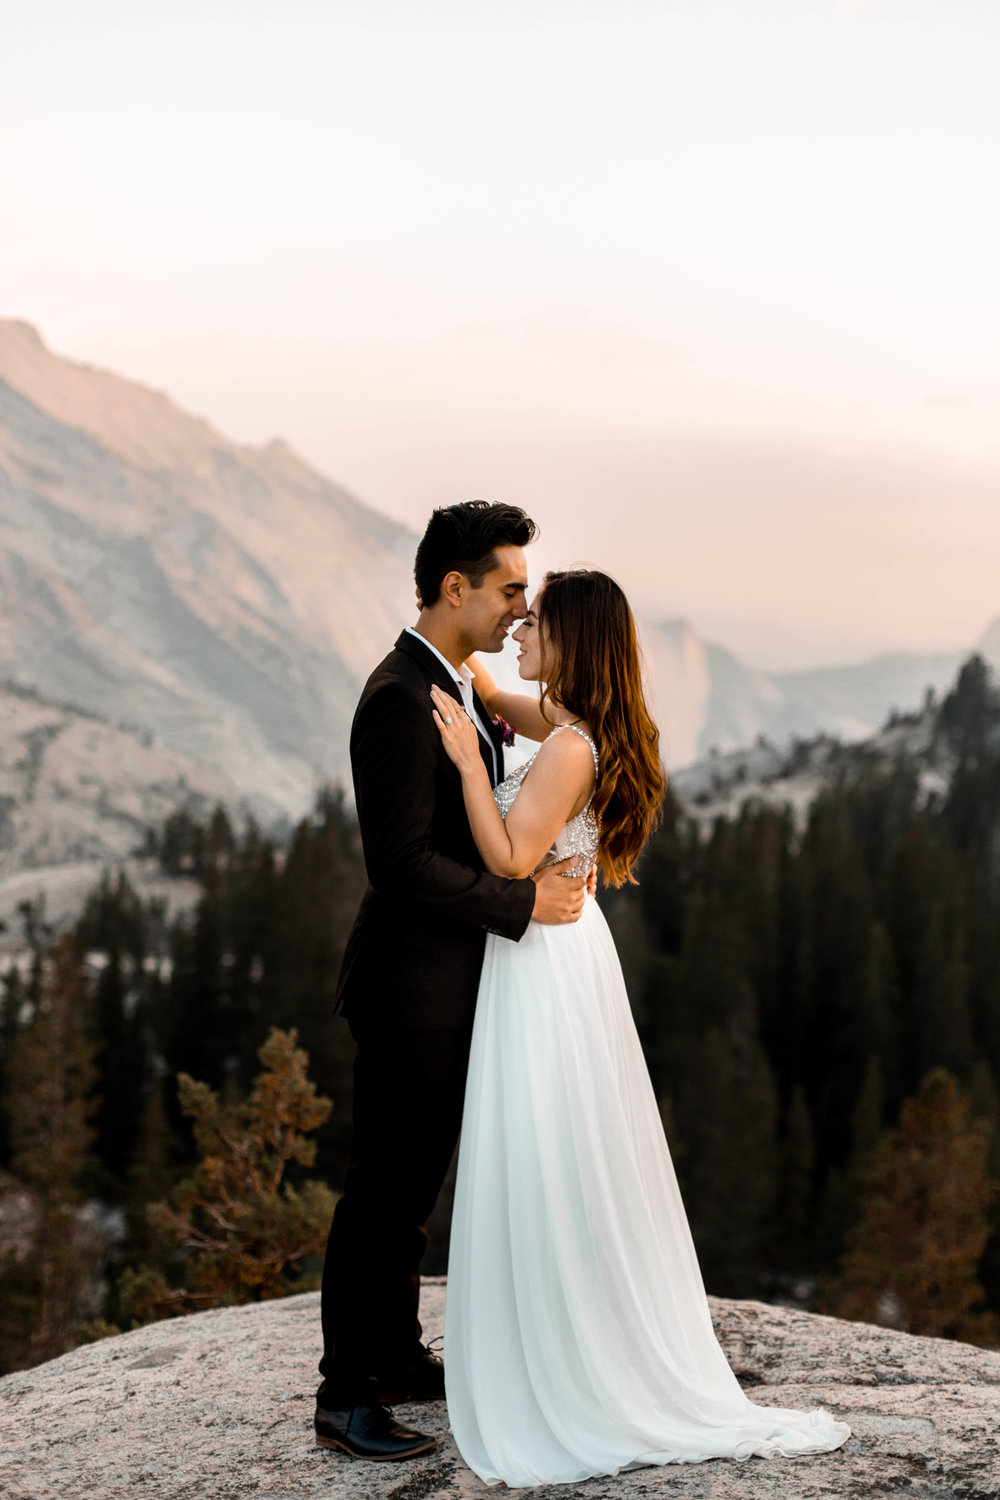 nicole-daacke-photography-yosemite-national-park-wedding-sunset-elopement-olmstead-point-yosemite-adventure-wedding-photographer-adventurous-elopement-destination-wedding-national-park-wedding-photography-1657.jpg